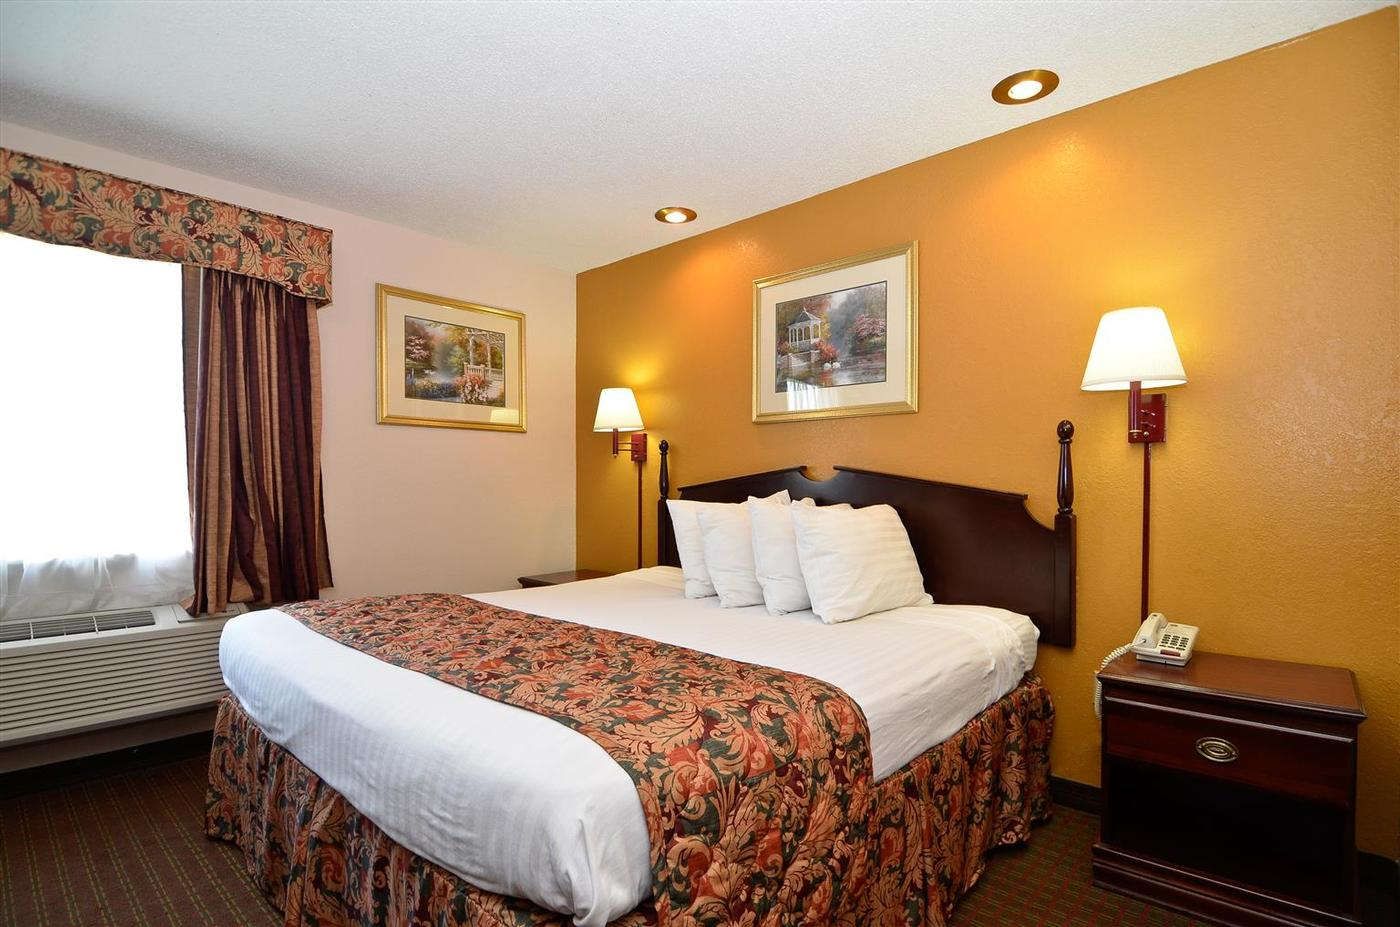 Photo of BEST WESTERN Richland Inn & Suites Room